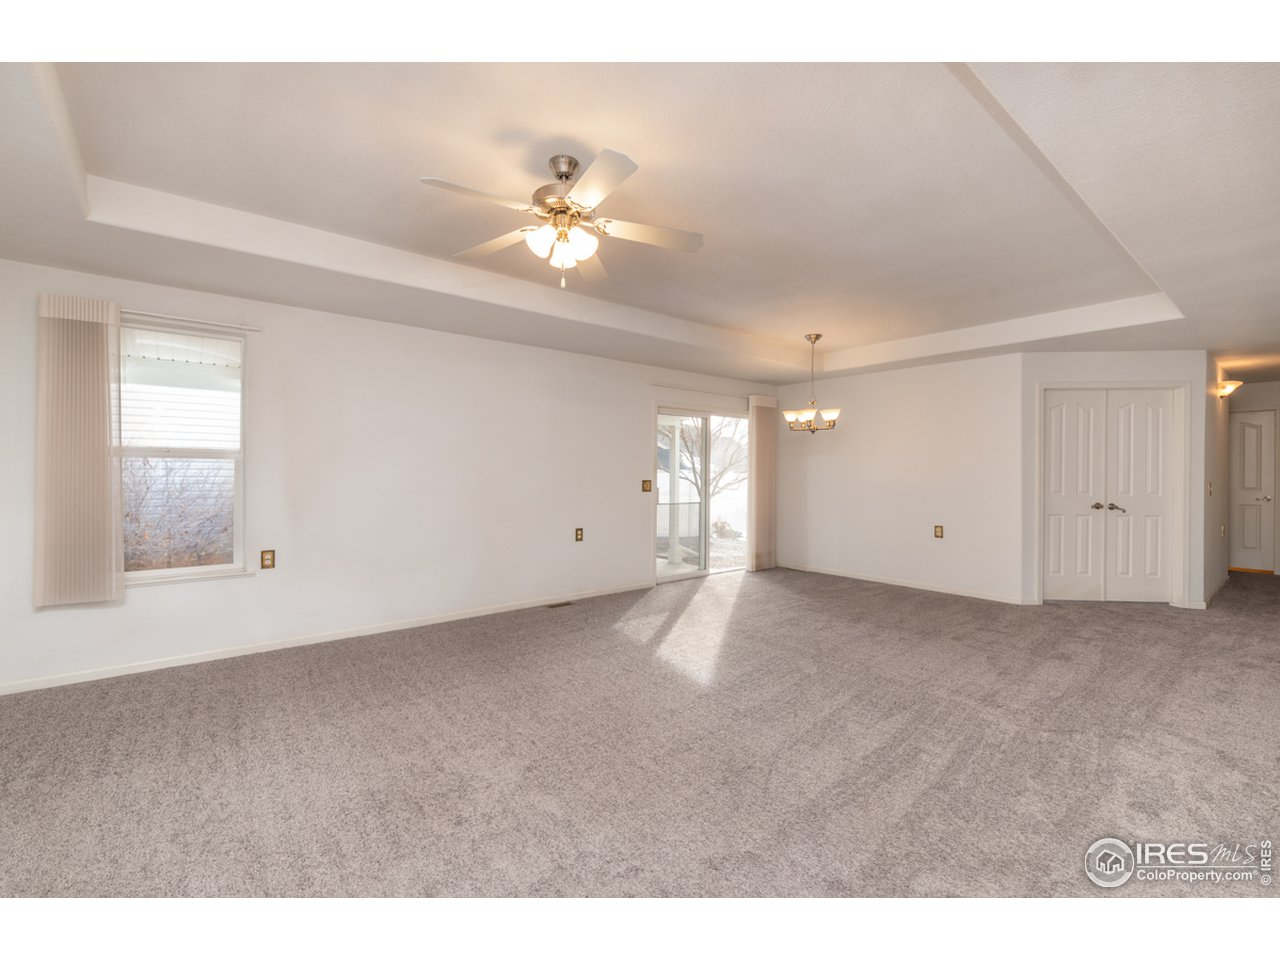 Combined living/Dining room space